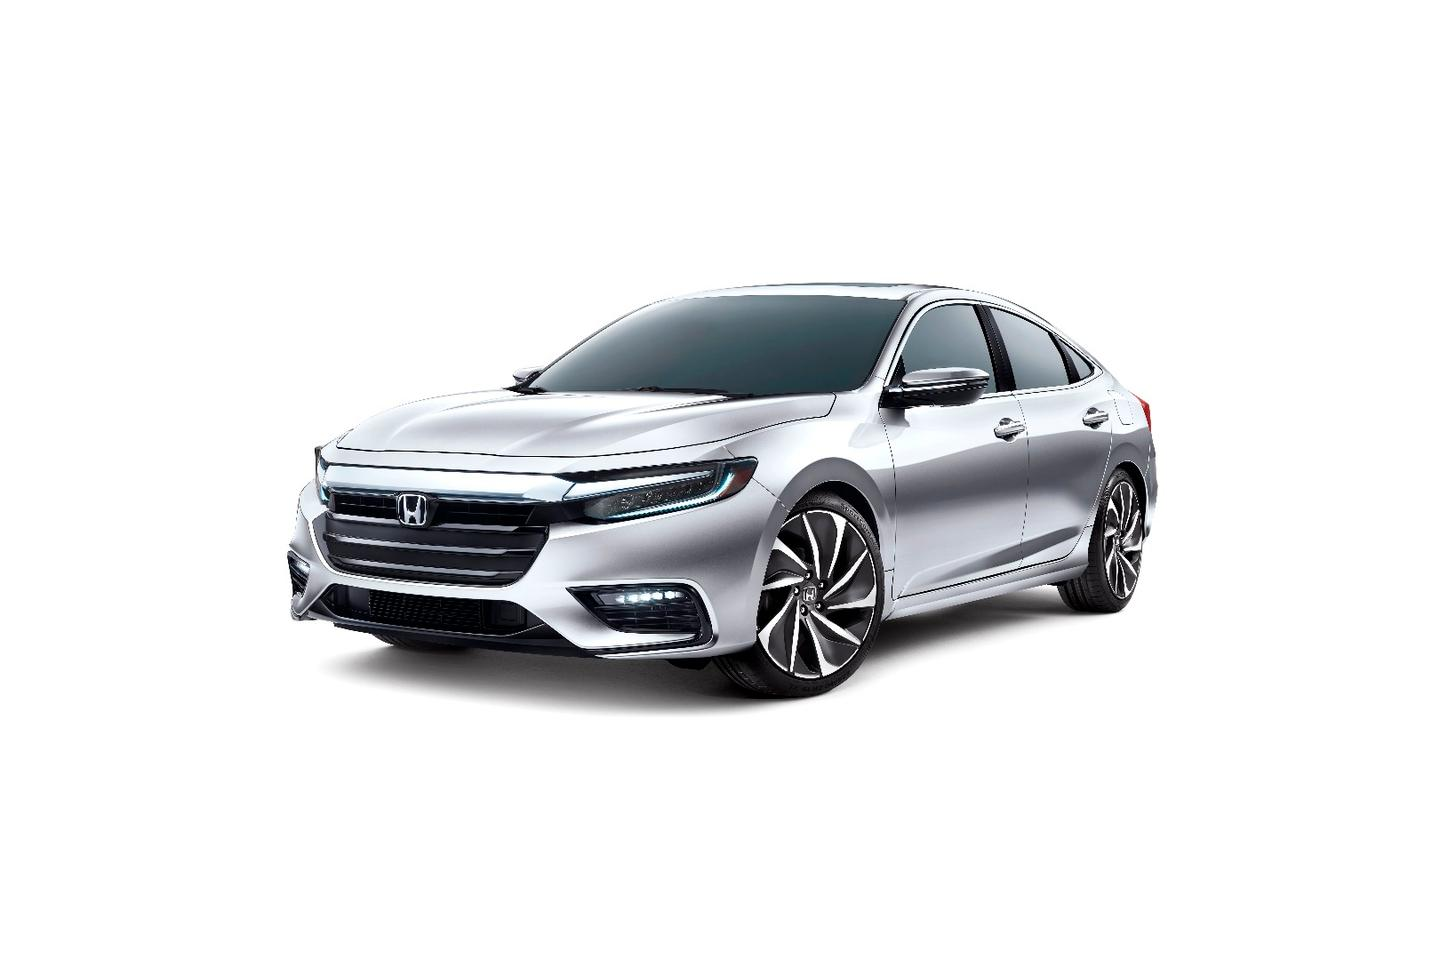 """""""The new 2019 Honda Insight signals we are entering a new era of electrification with a new generation of Honda products that offer customers the benefits of advanced powertrain technology without the traditional trade-offs in design, premium features or packaging."""""""